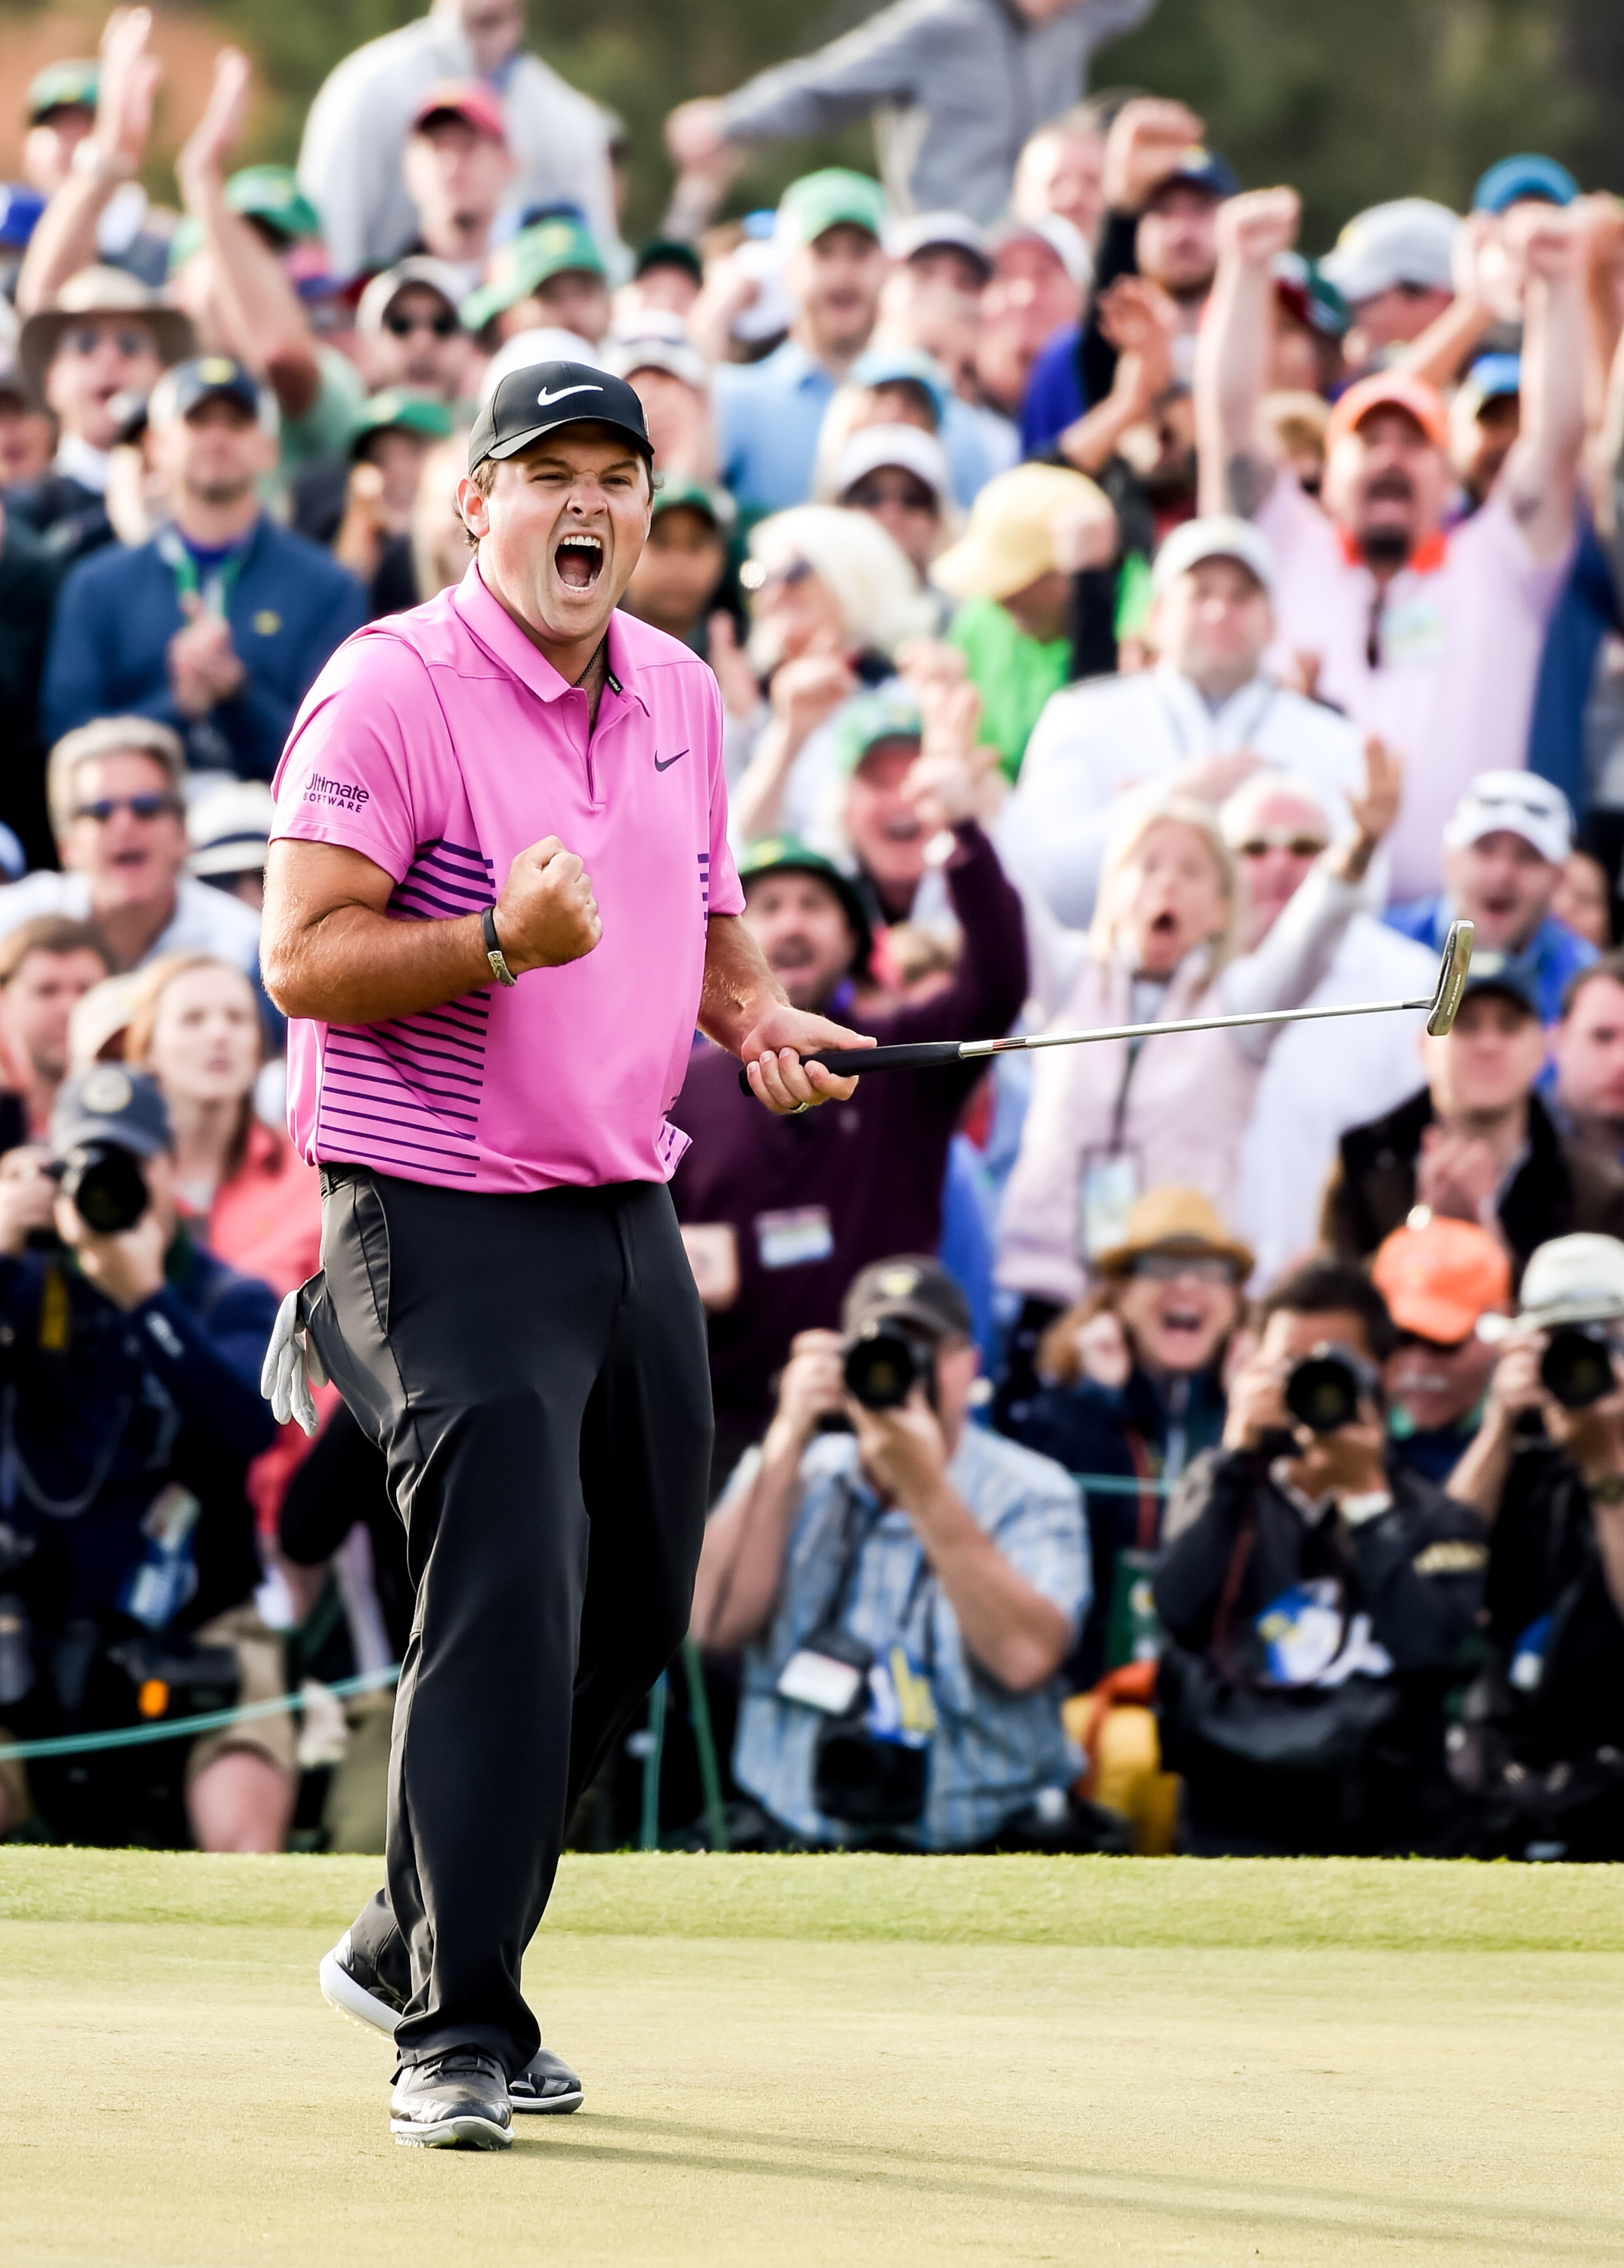 Former Augusta State star Patrick Reed bests challengers to win Masters, first major